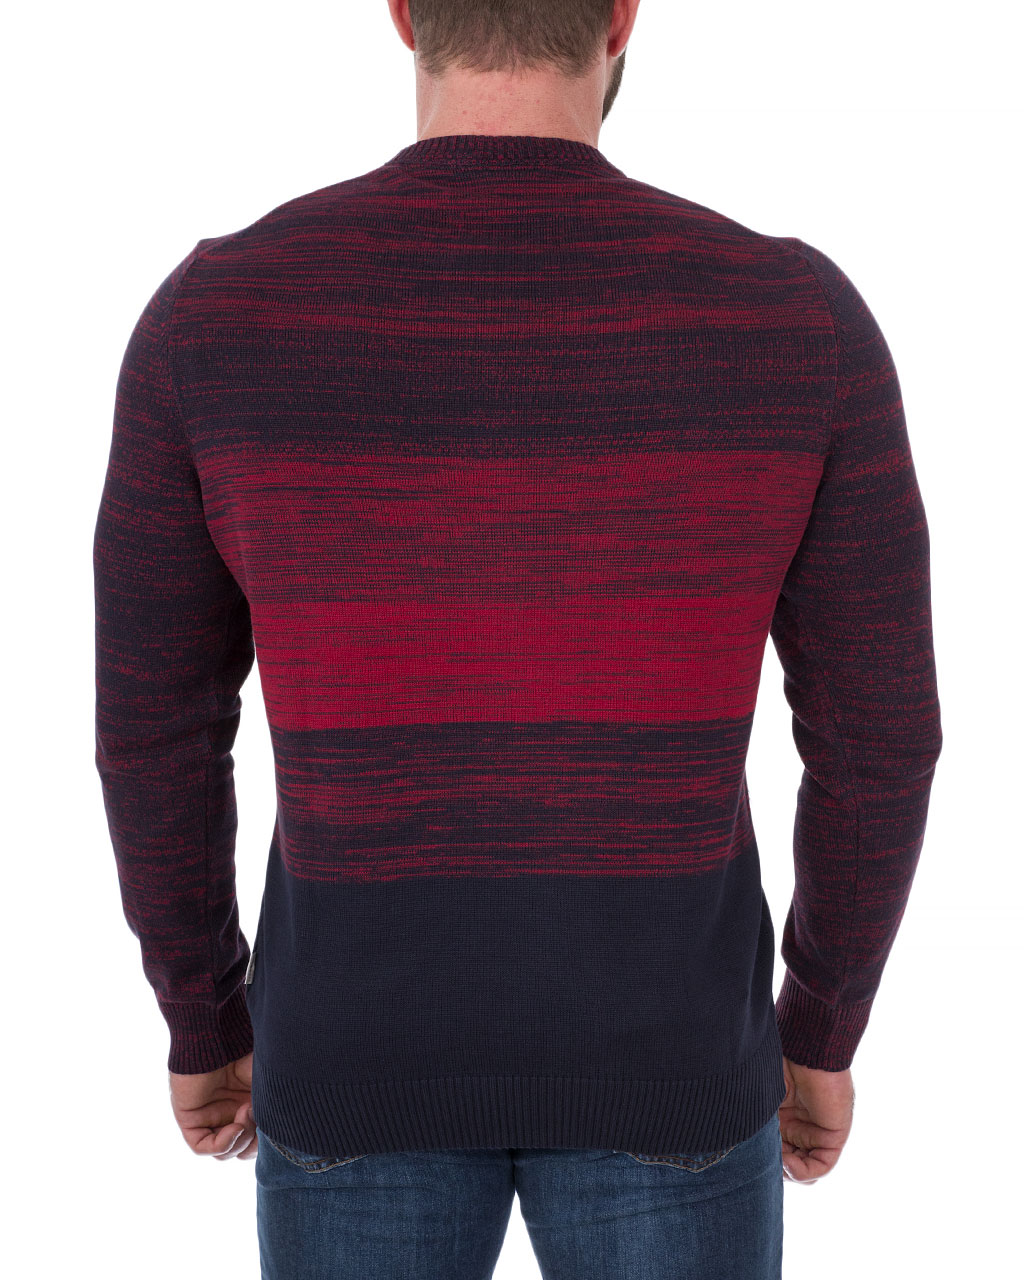 Men's jumper 7450-45522-960/19-20--2 (6)